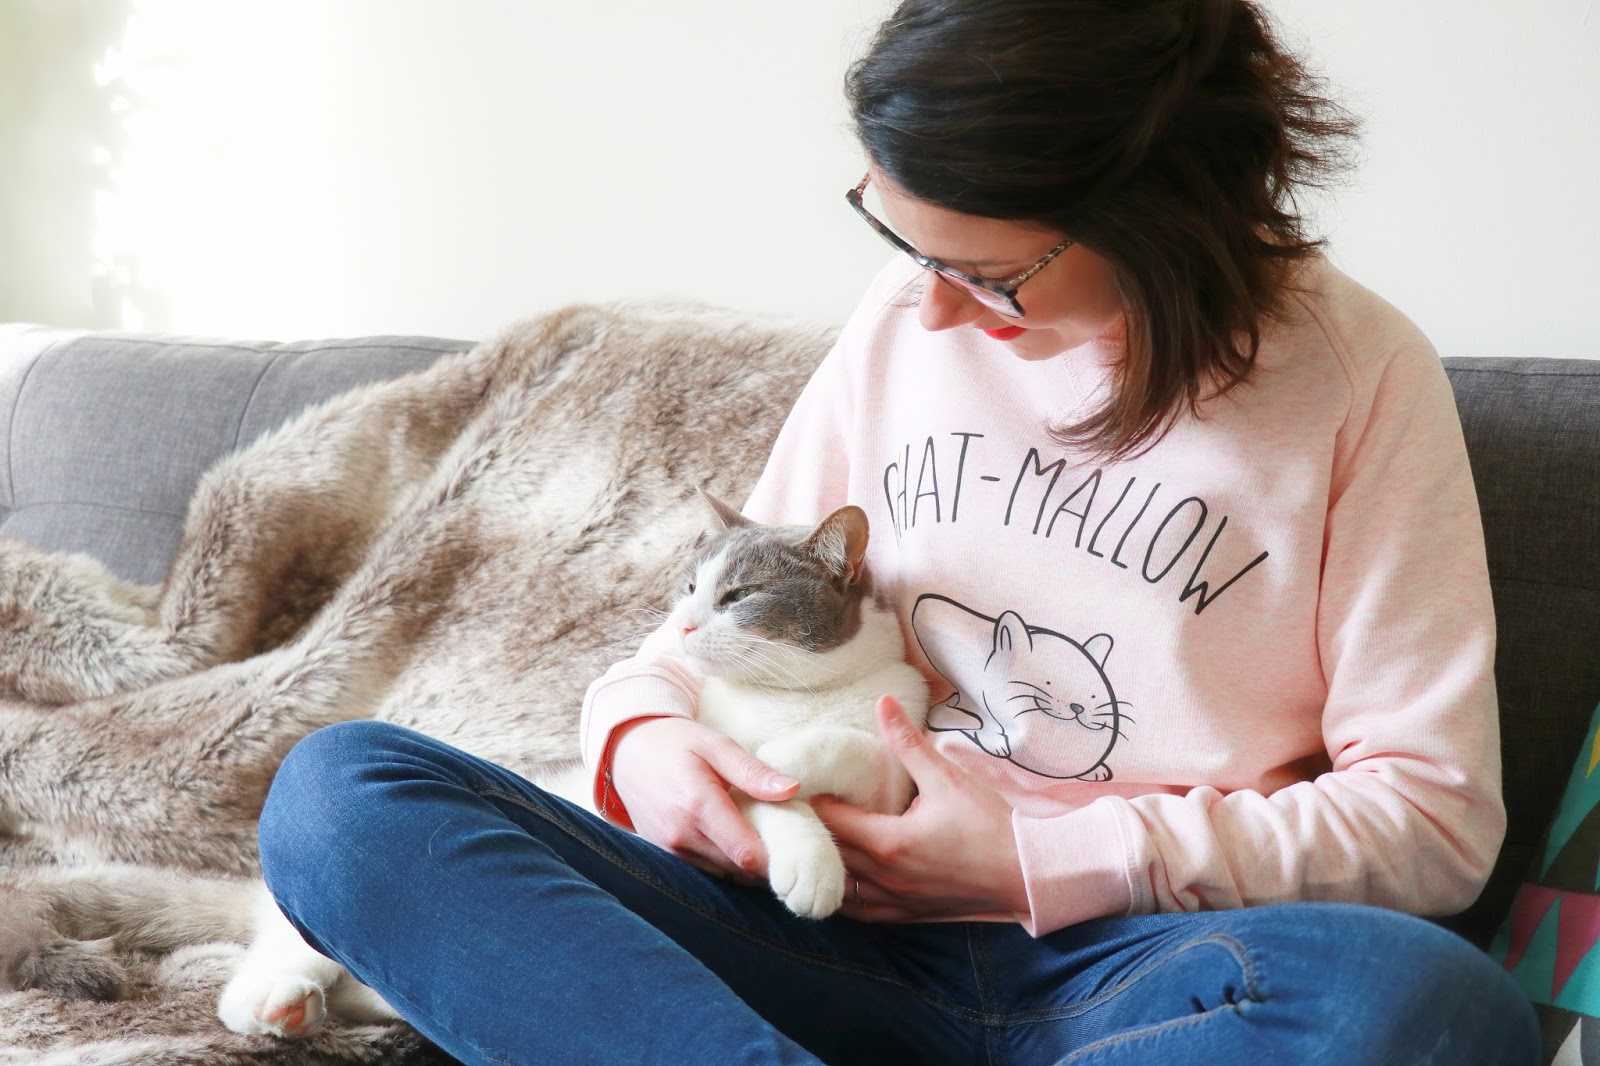 le fabuleux shaman chat mallow nouvelle collection tenue look pull over rose animaux de compagnie chamallow de paques hema les gommettes de melo